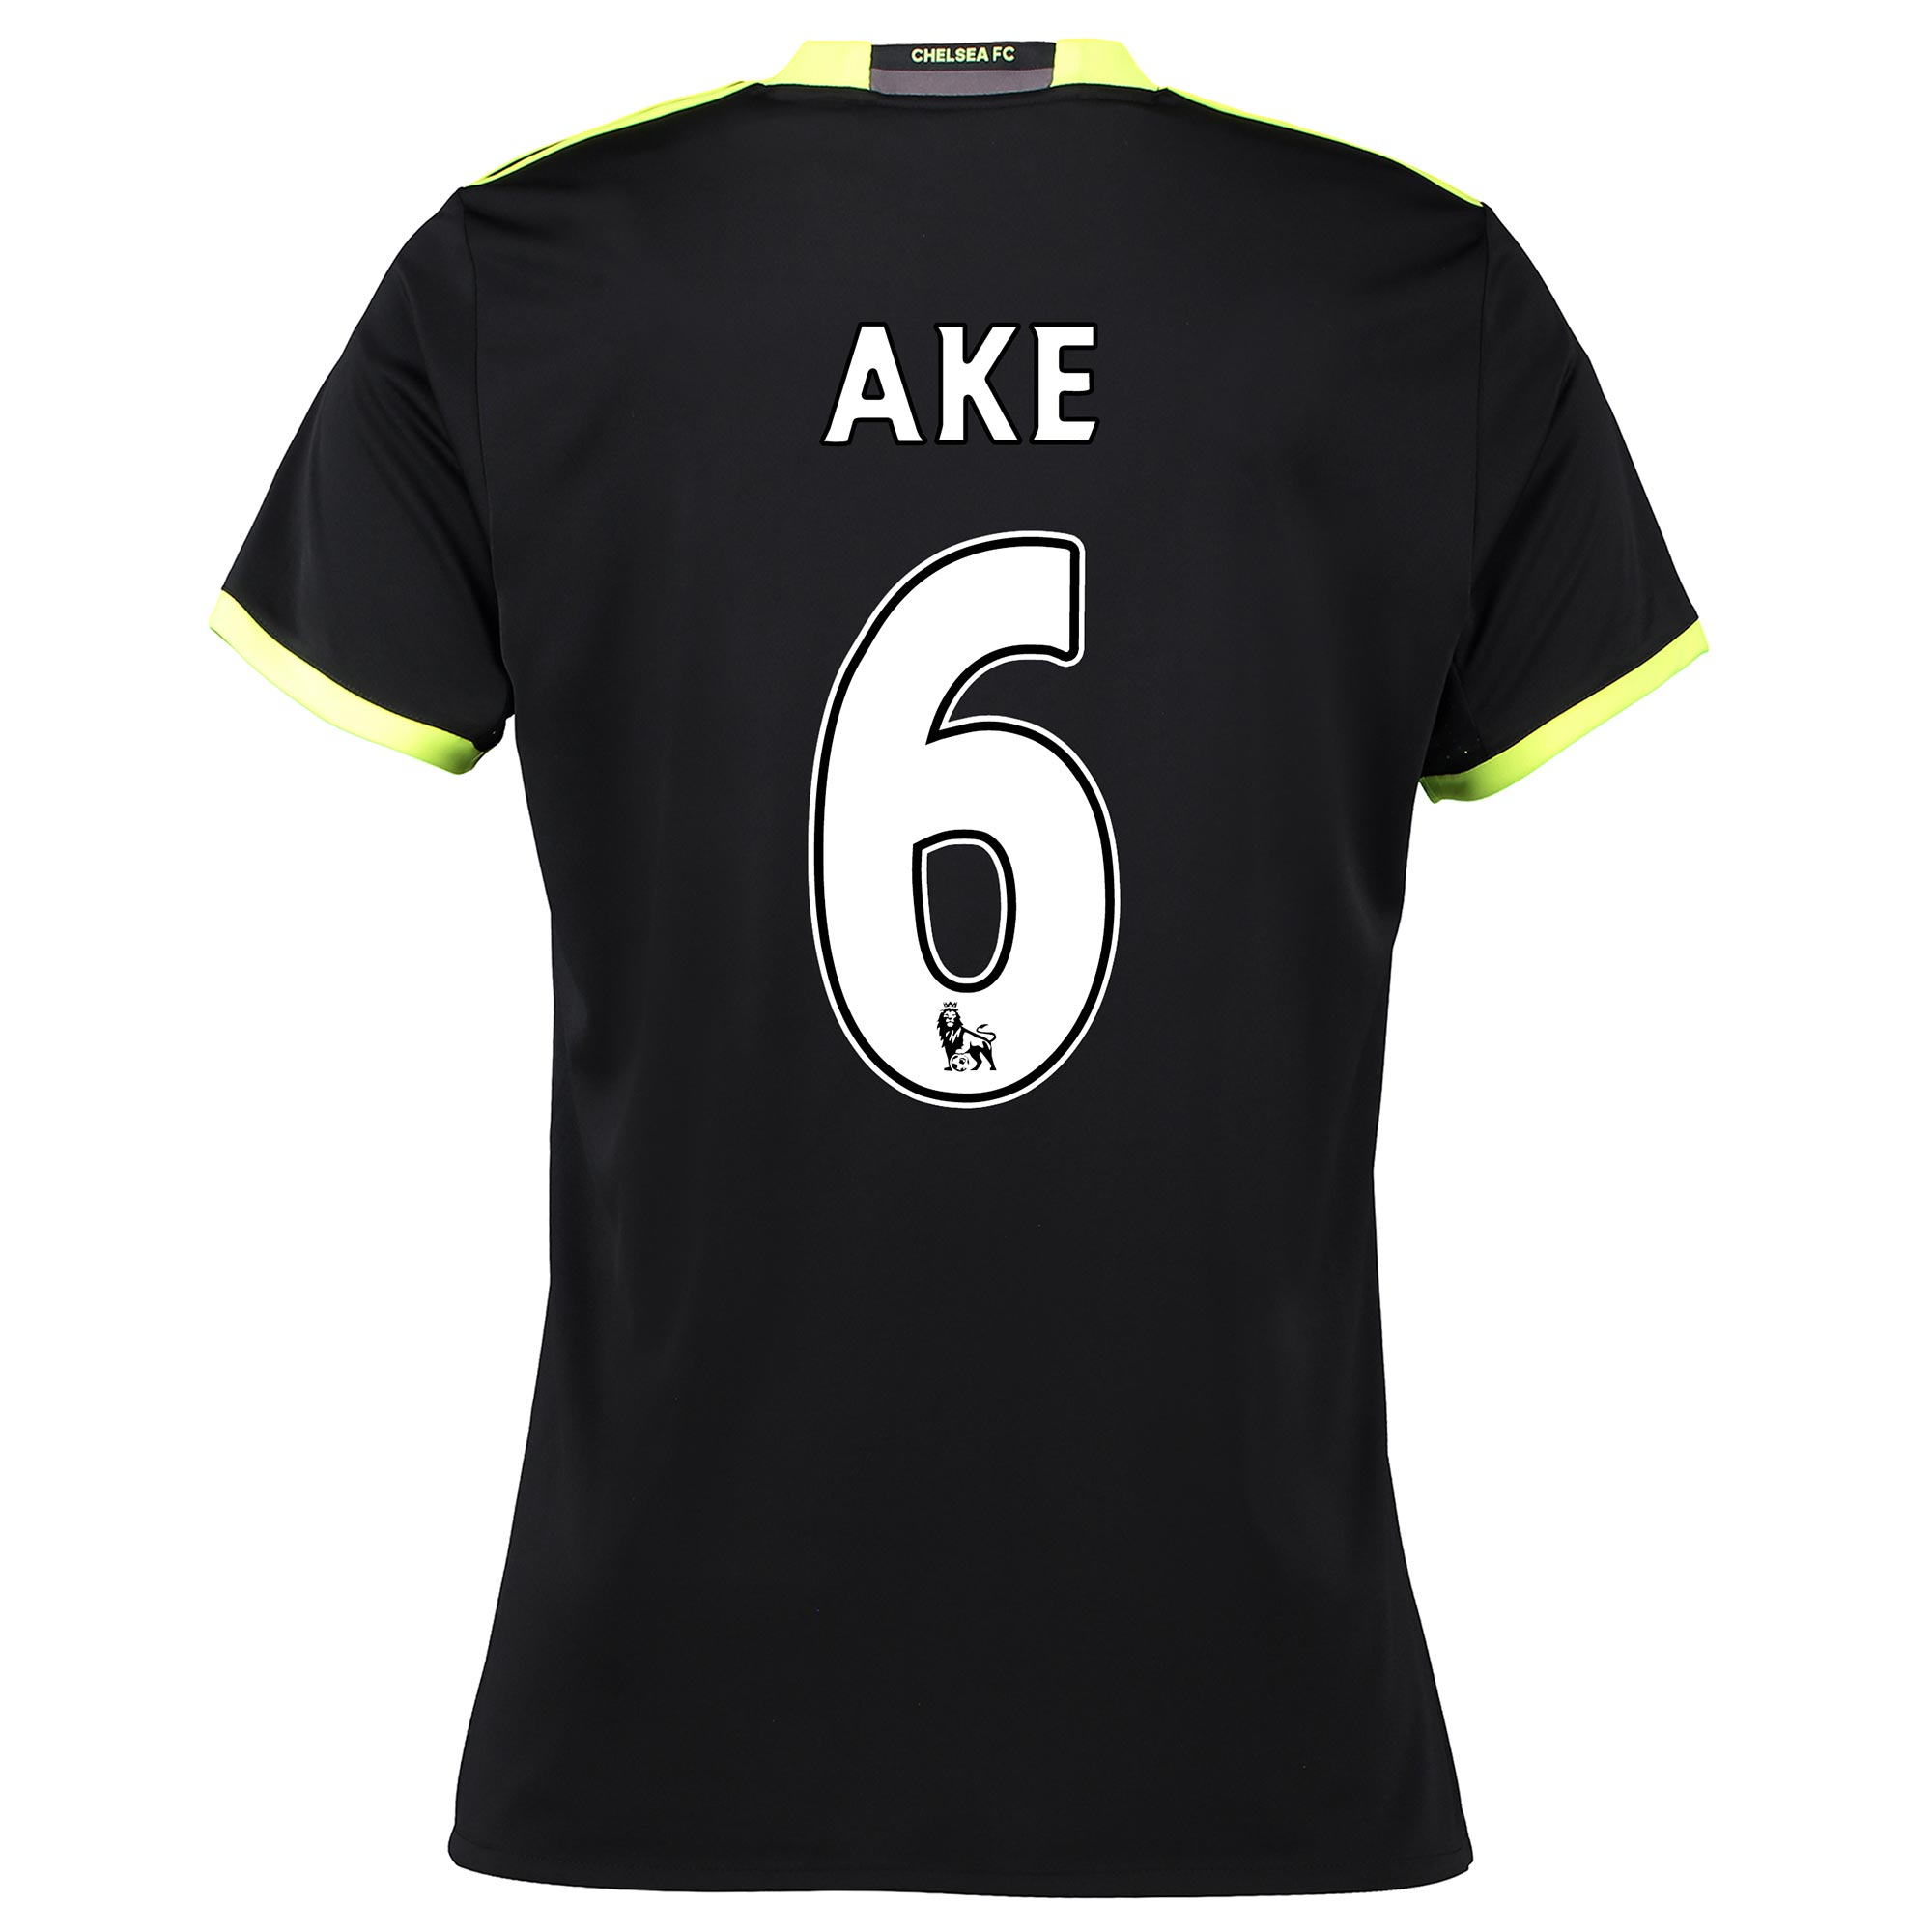 Chelsea Away Shirt 16-17 - Womens with Ake 6 printing